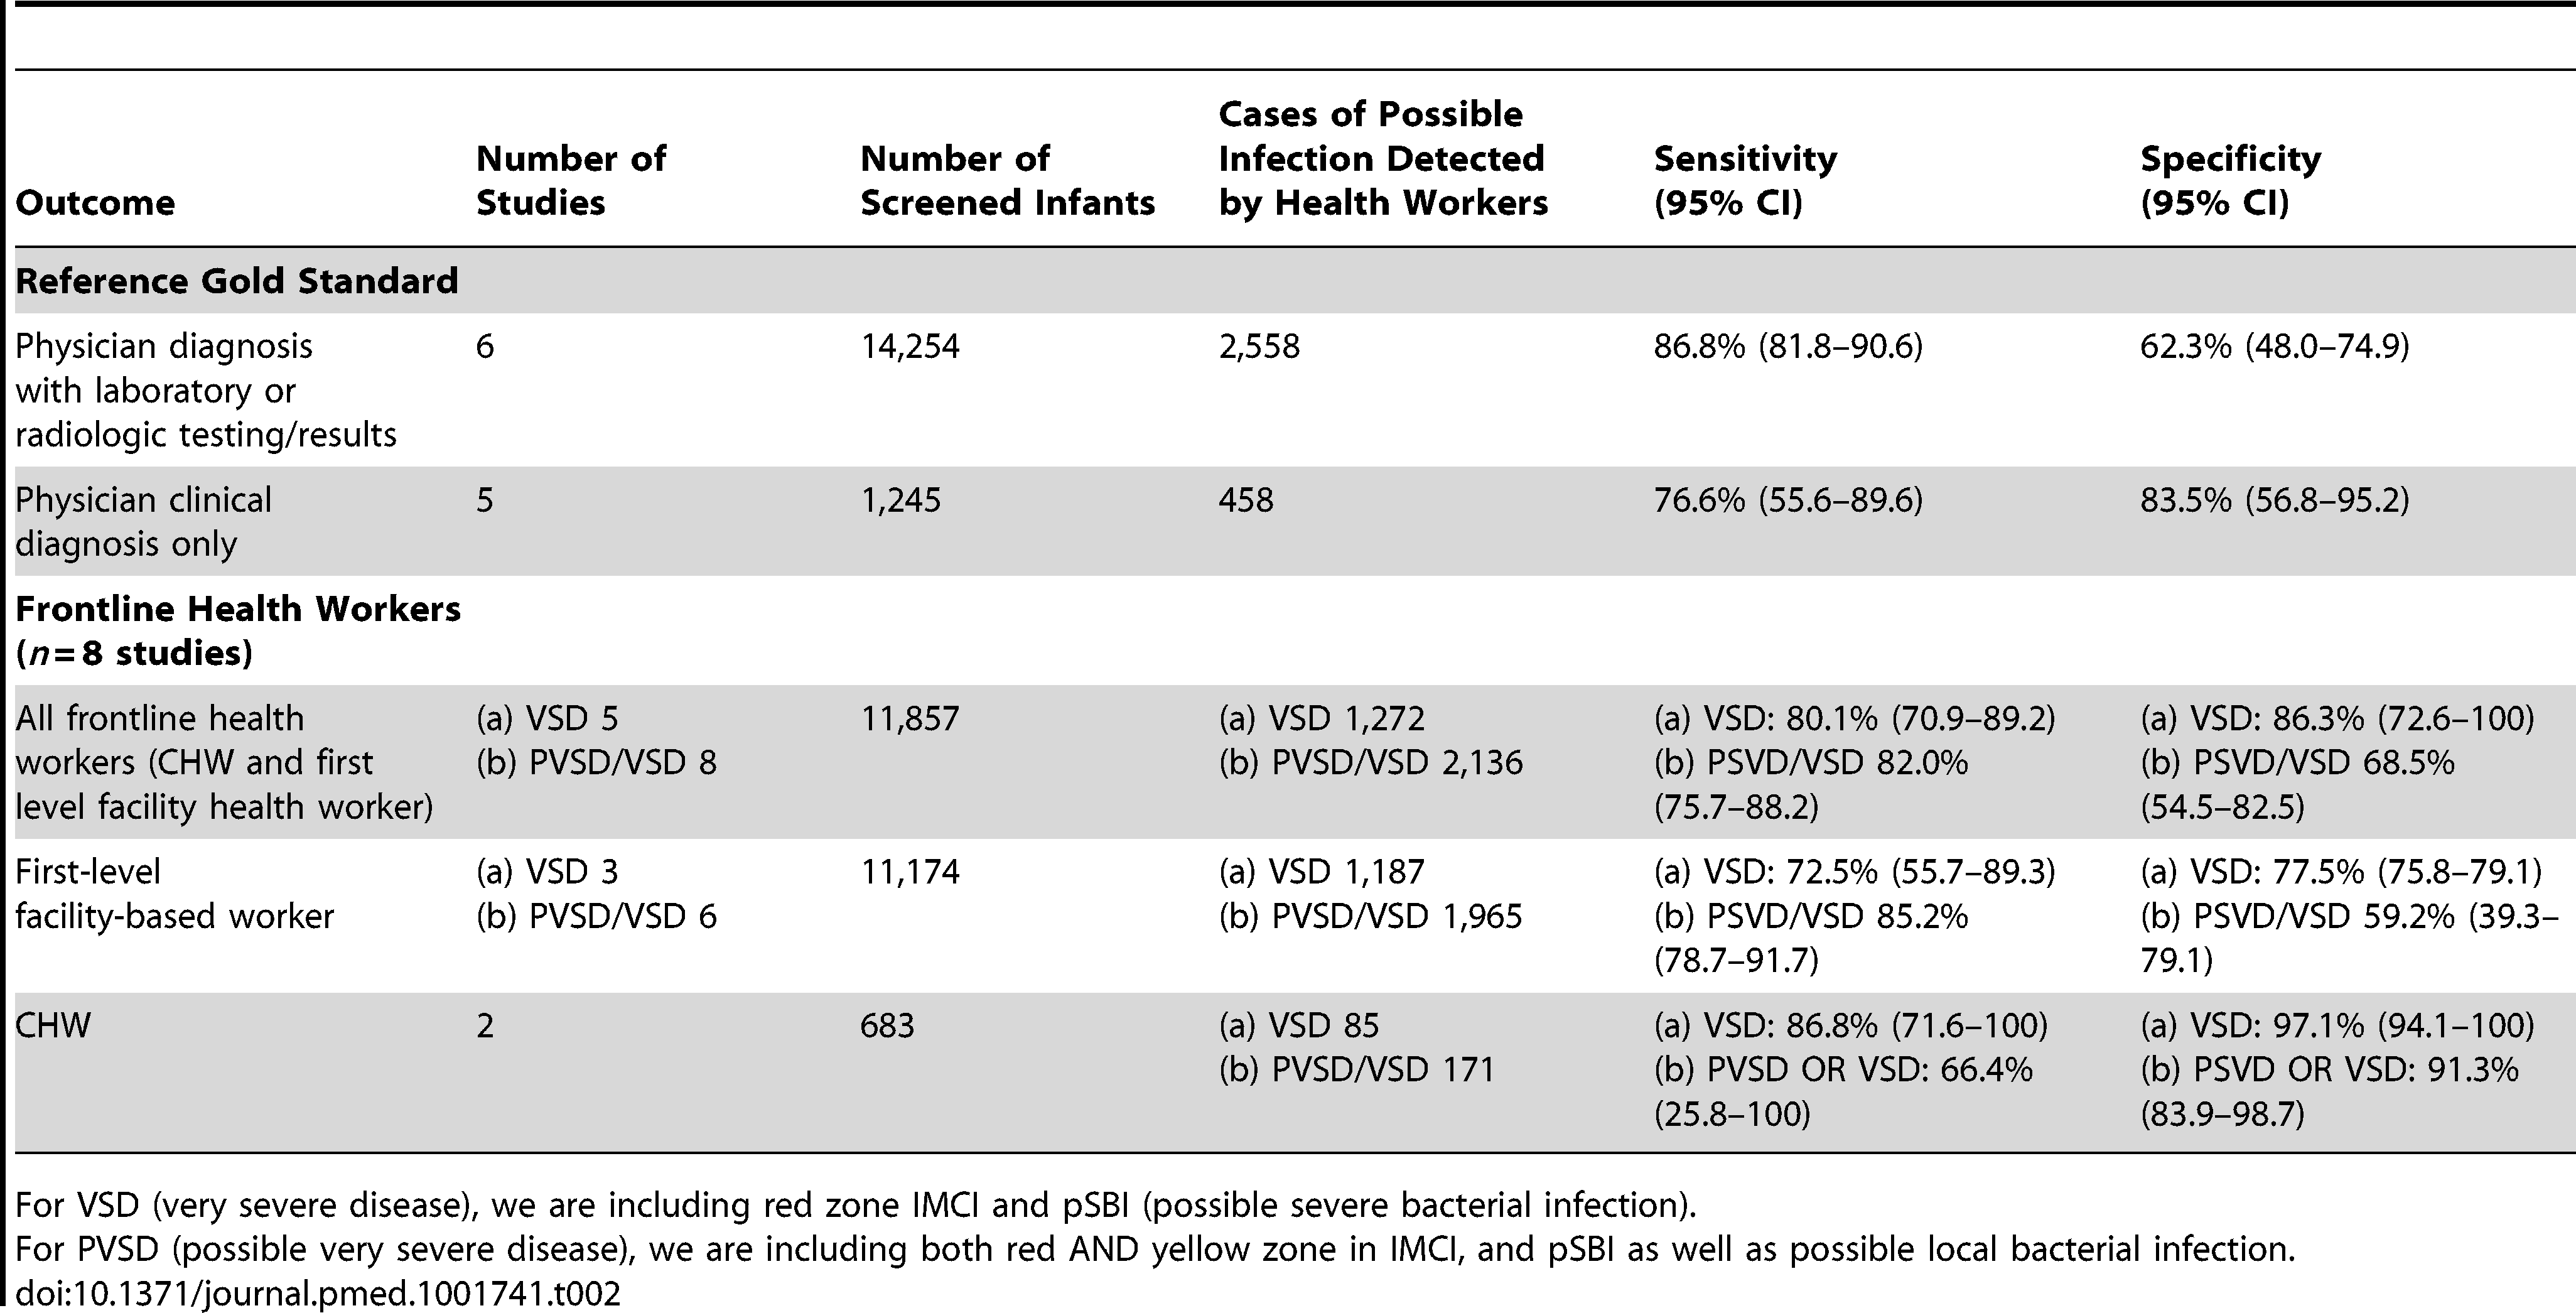 Diagnostic accuracy of clinical algorithms and frontline health workers to detect severe disease/possible bacterial infection in young infants.